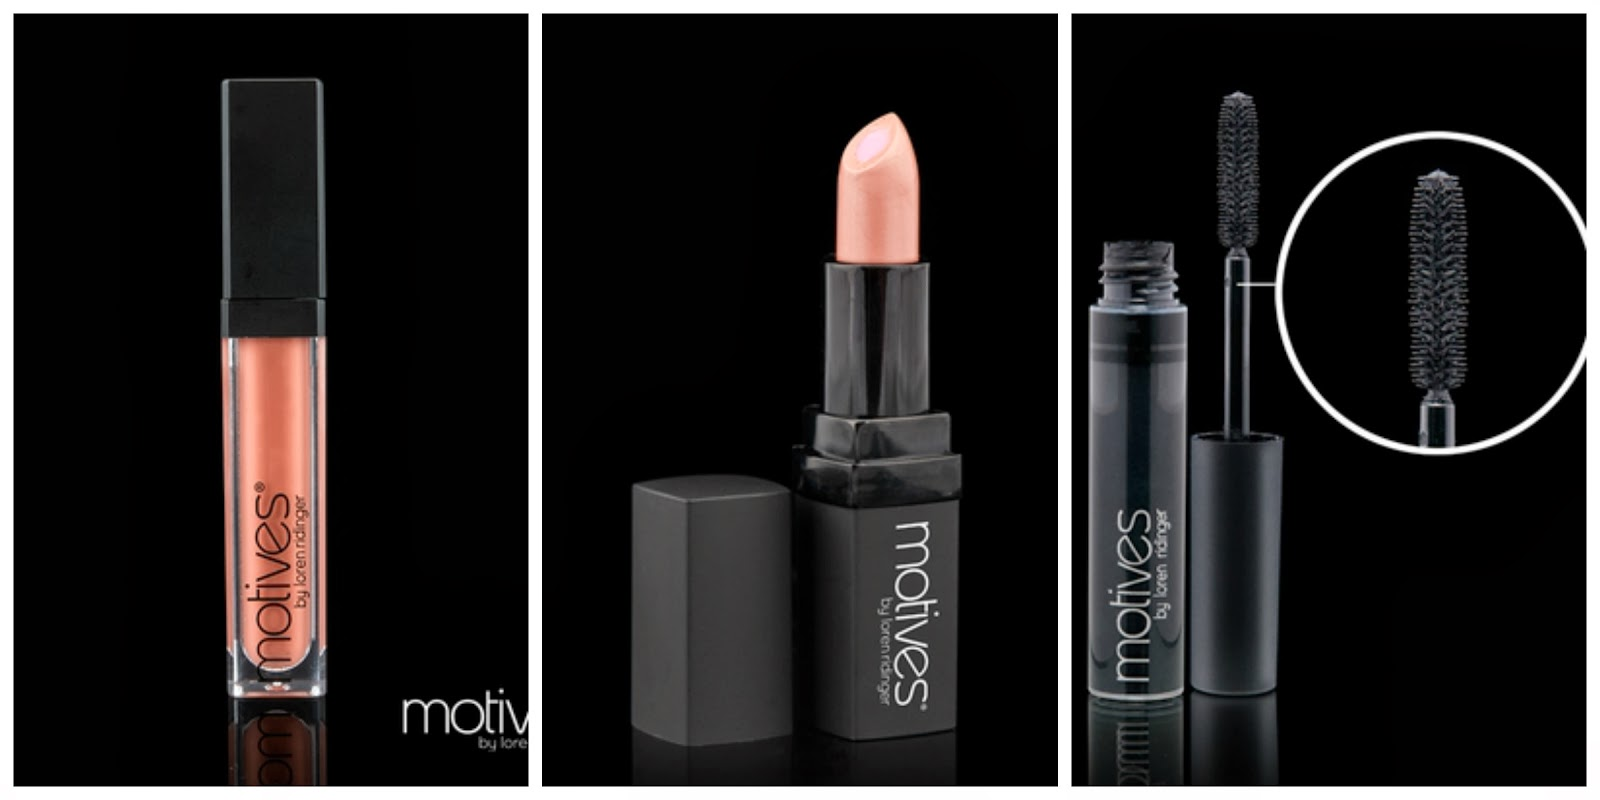 Motives Cosmetics Sensible Stylista